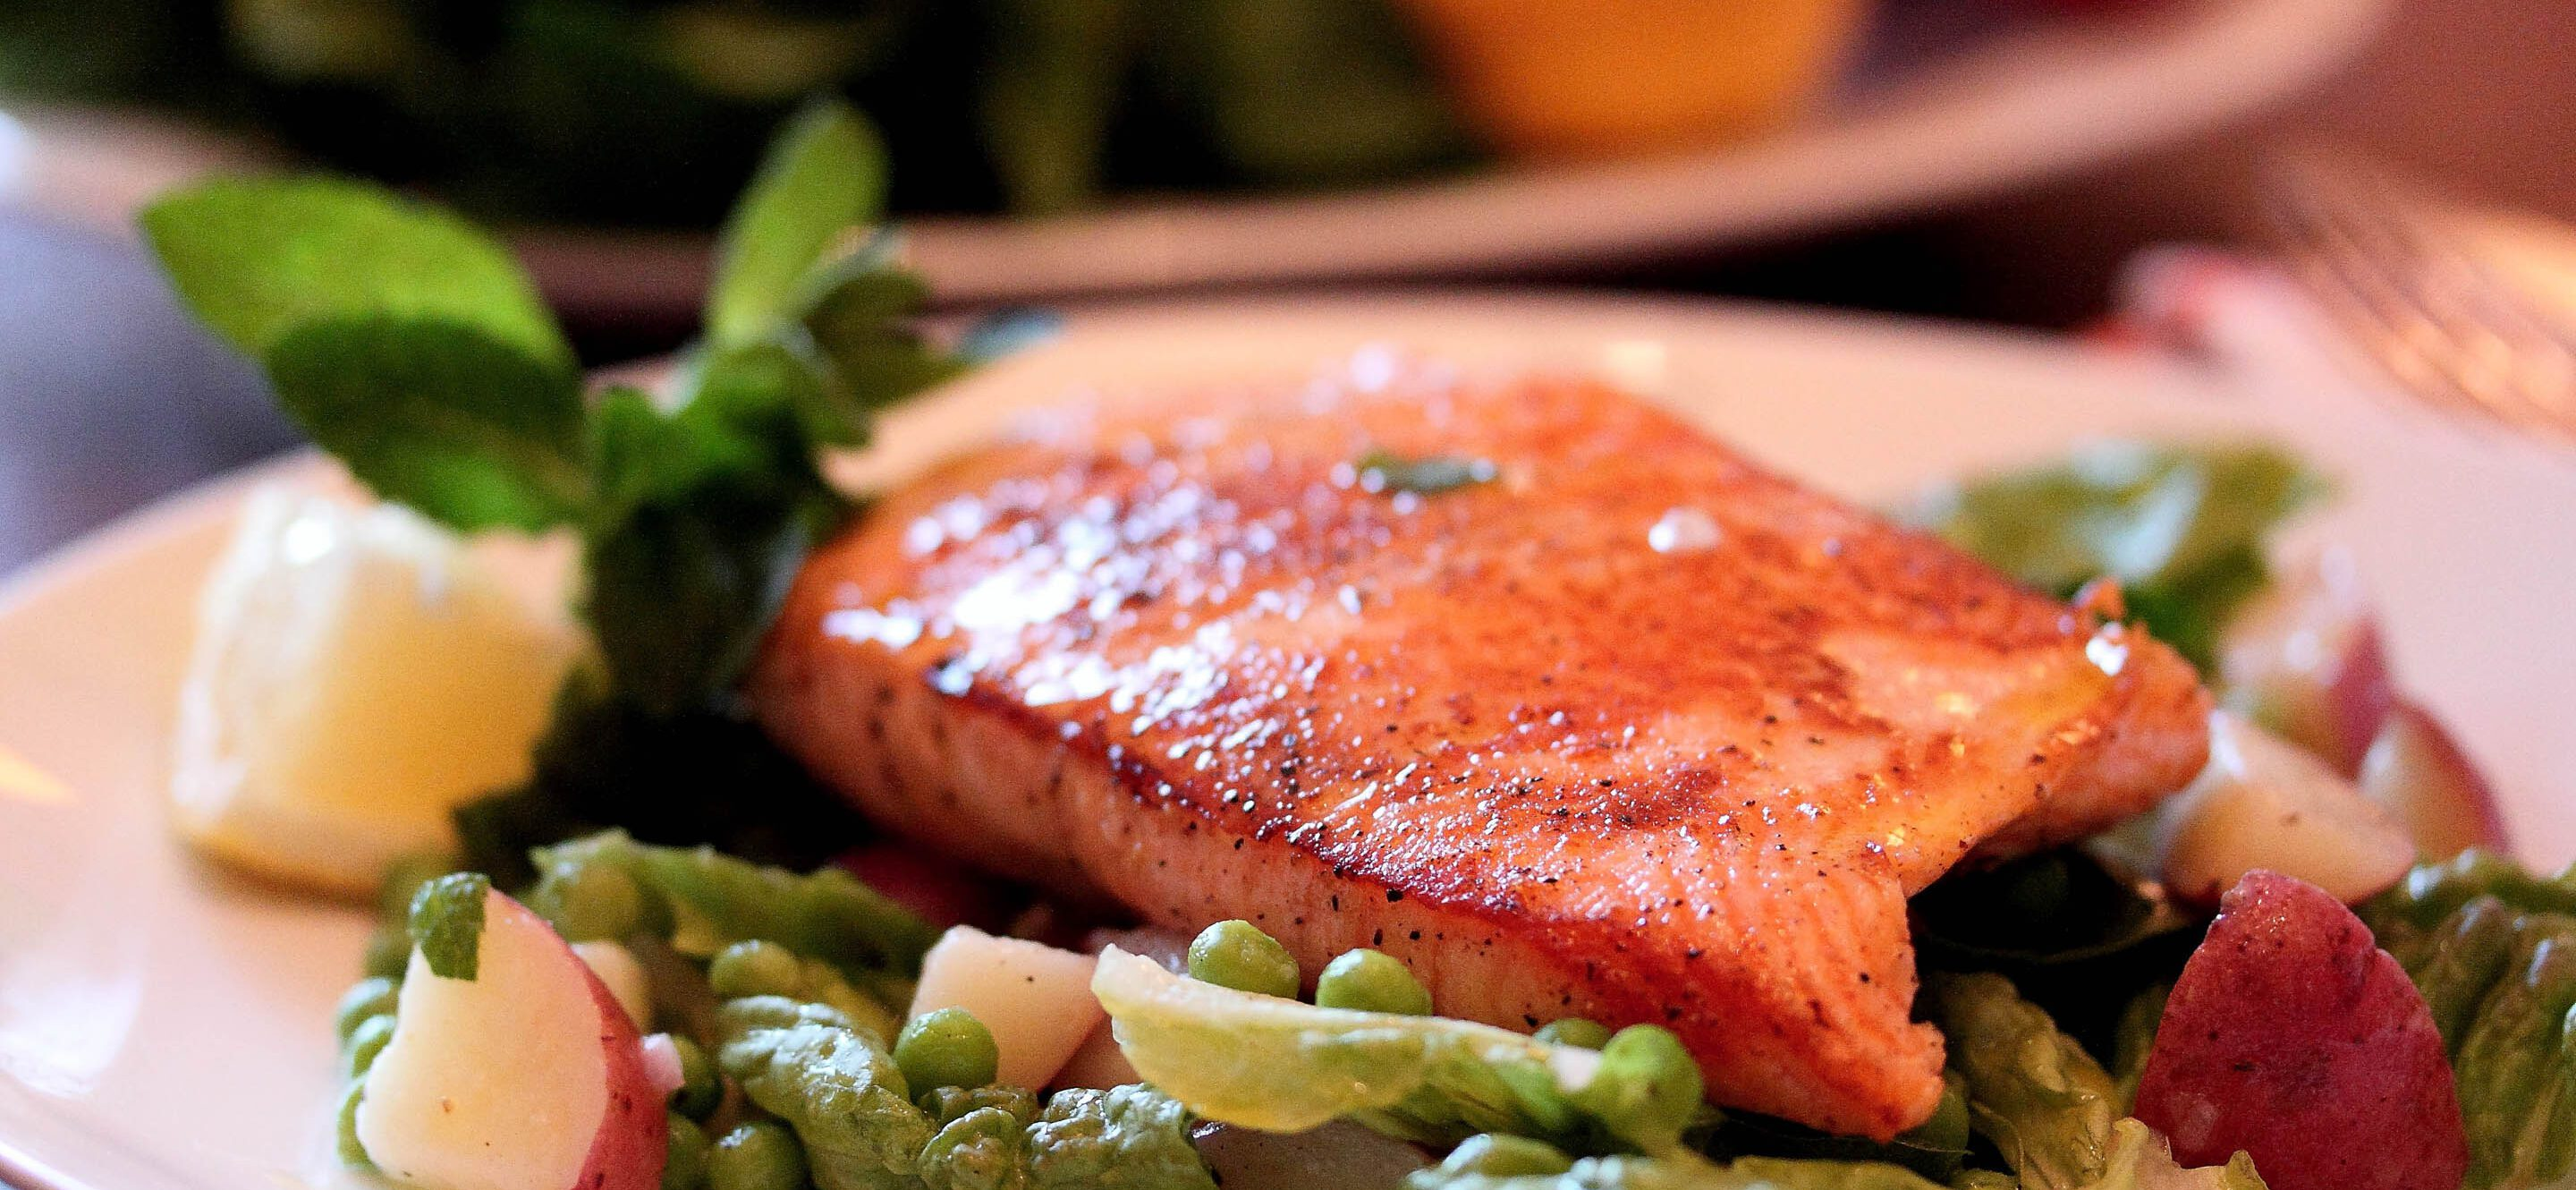 Seared salmon with peas, potatoes and mint.